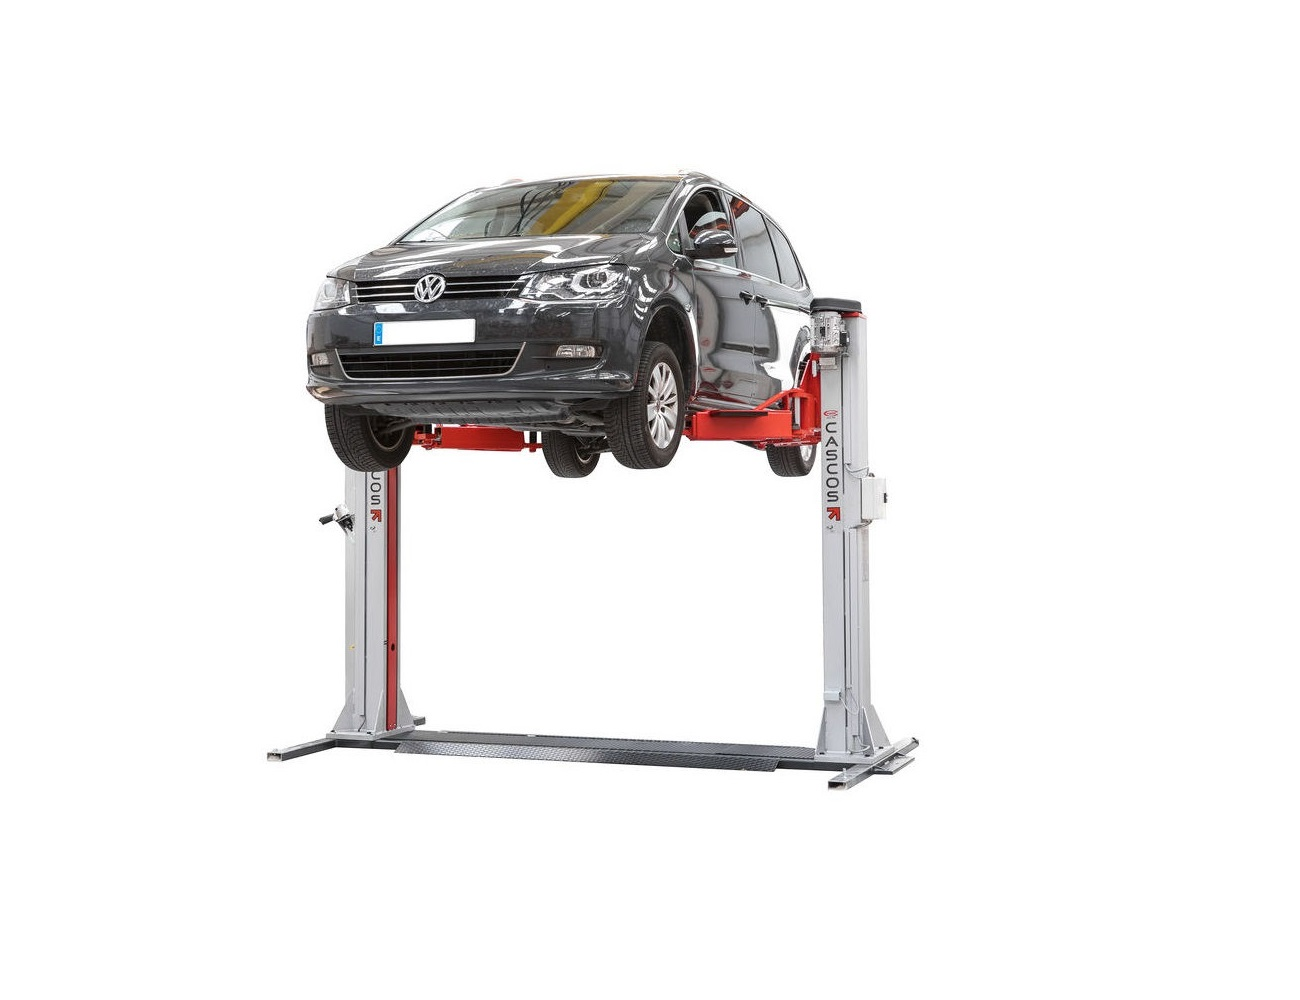 Lifts for vehicles of 2 post | Cascos | Lifts vehicle workshop